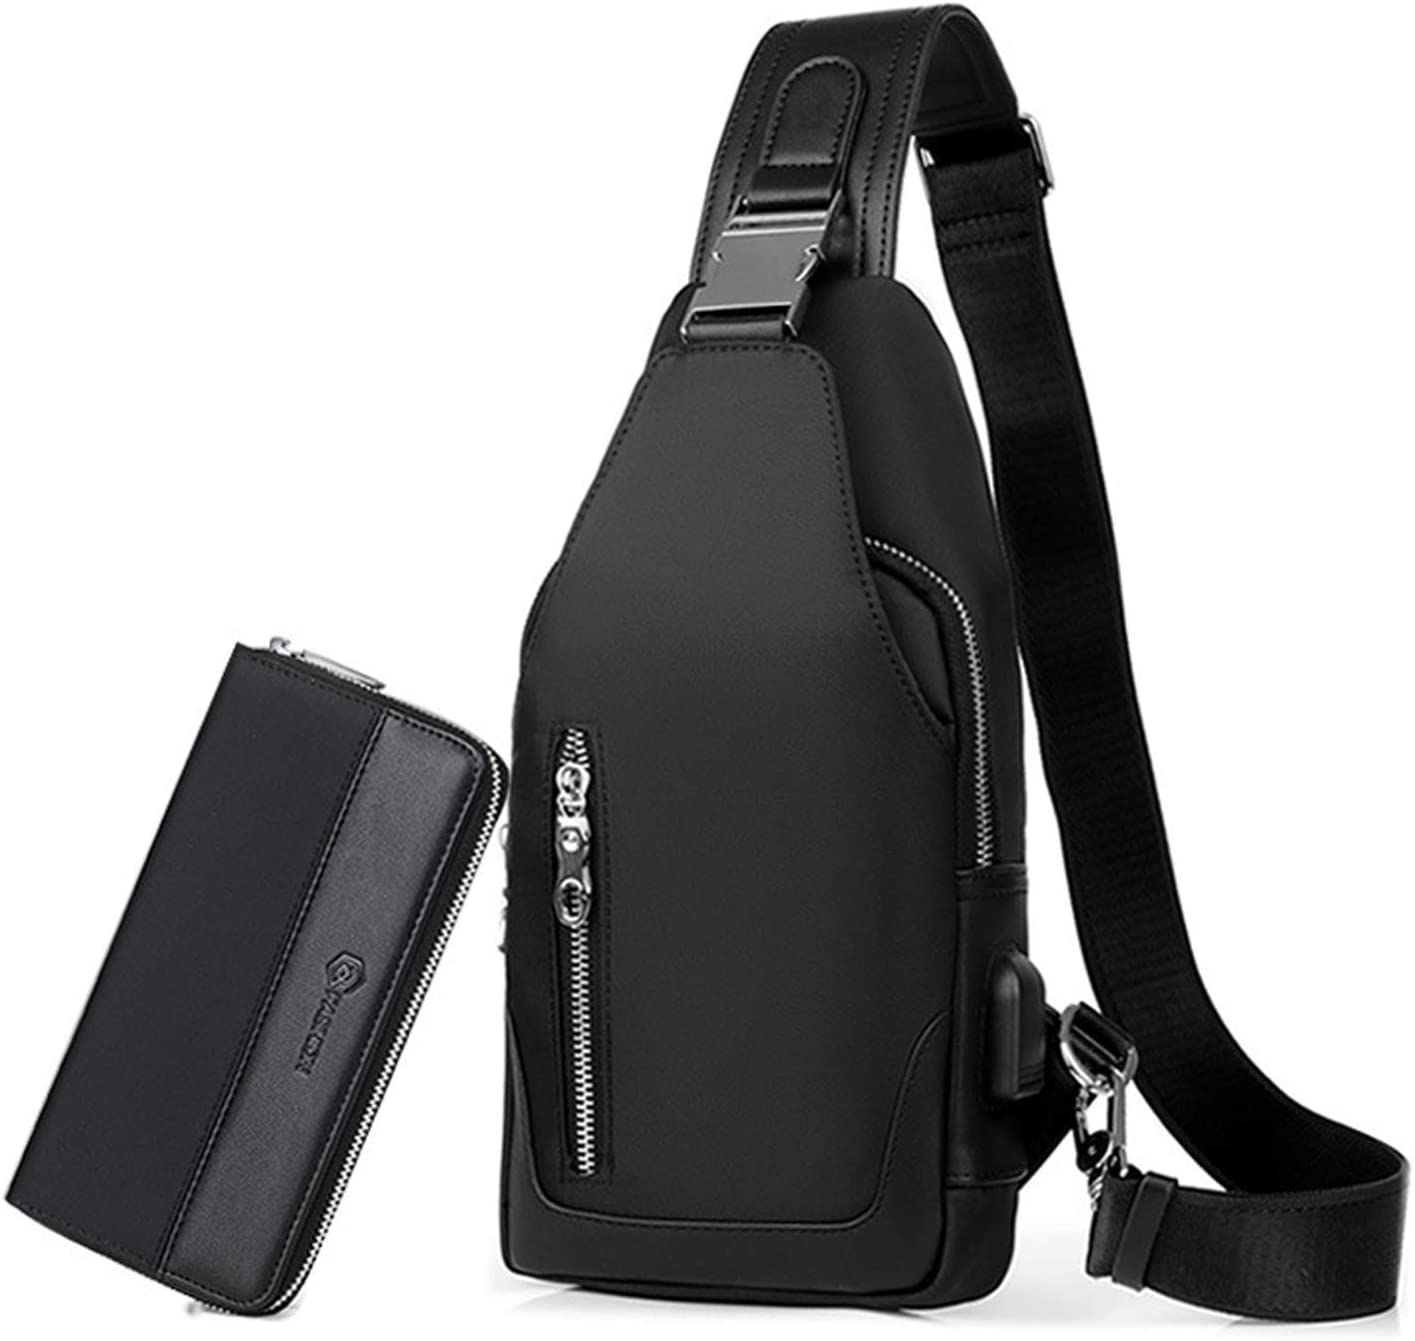 RTGFS Sling Bag Men Chest Pack with Clutch Bag, Crossbody Bag with USB One Strap Backpack for Travel Cycling Camping Hiking Waterproof Polyester Black: Amazon.es: Equipaje